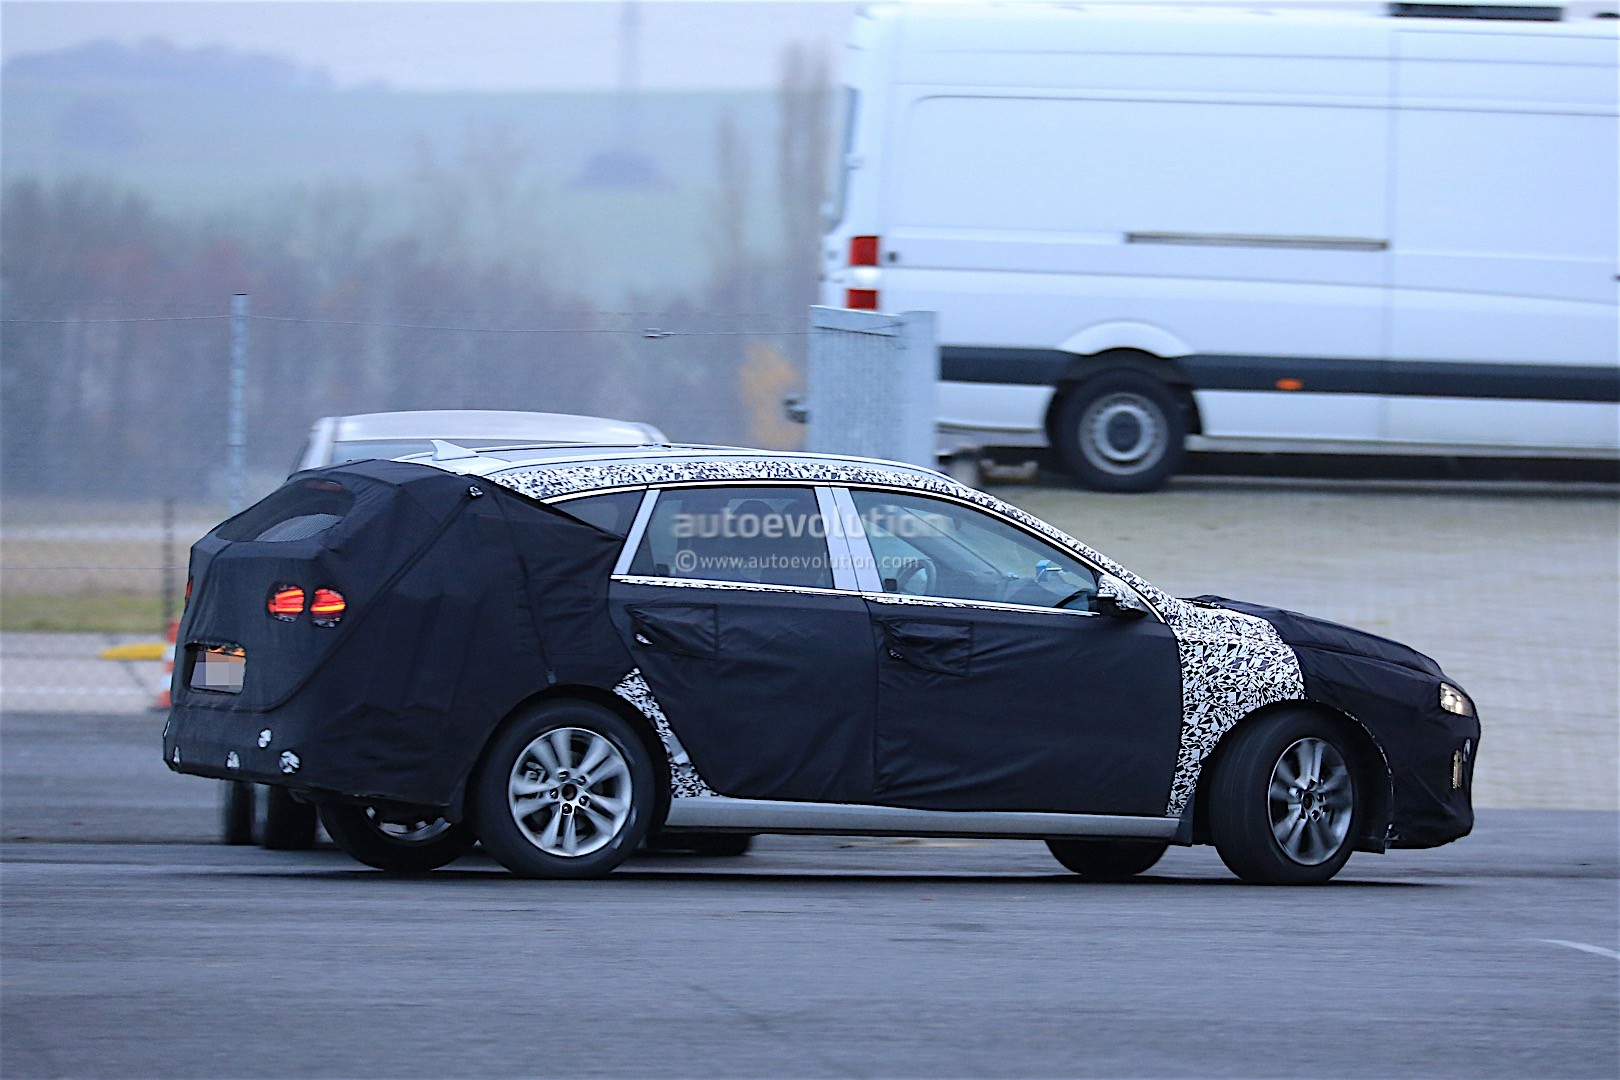 2018 Hyundai I30 Wagon Spied For The First Time Autoevolution